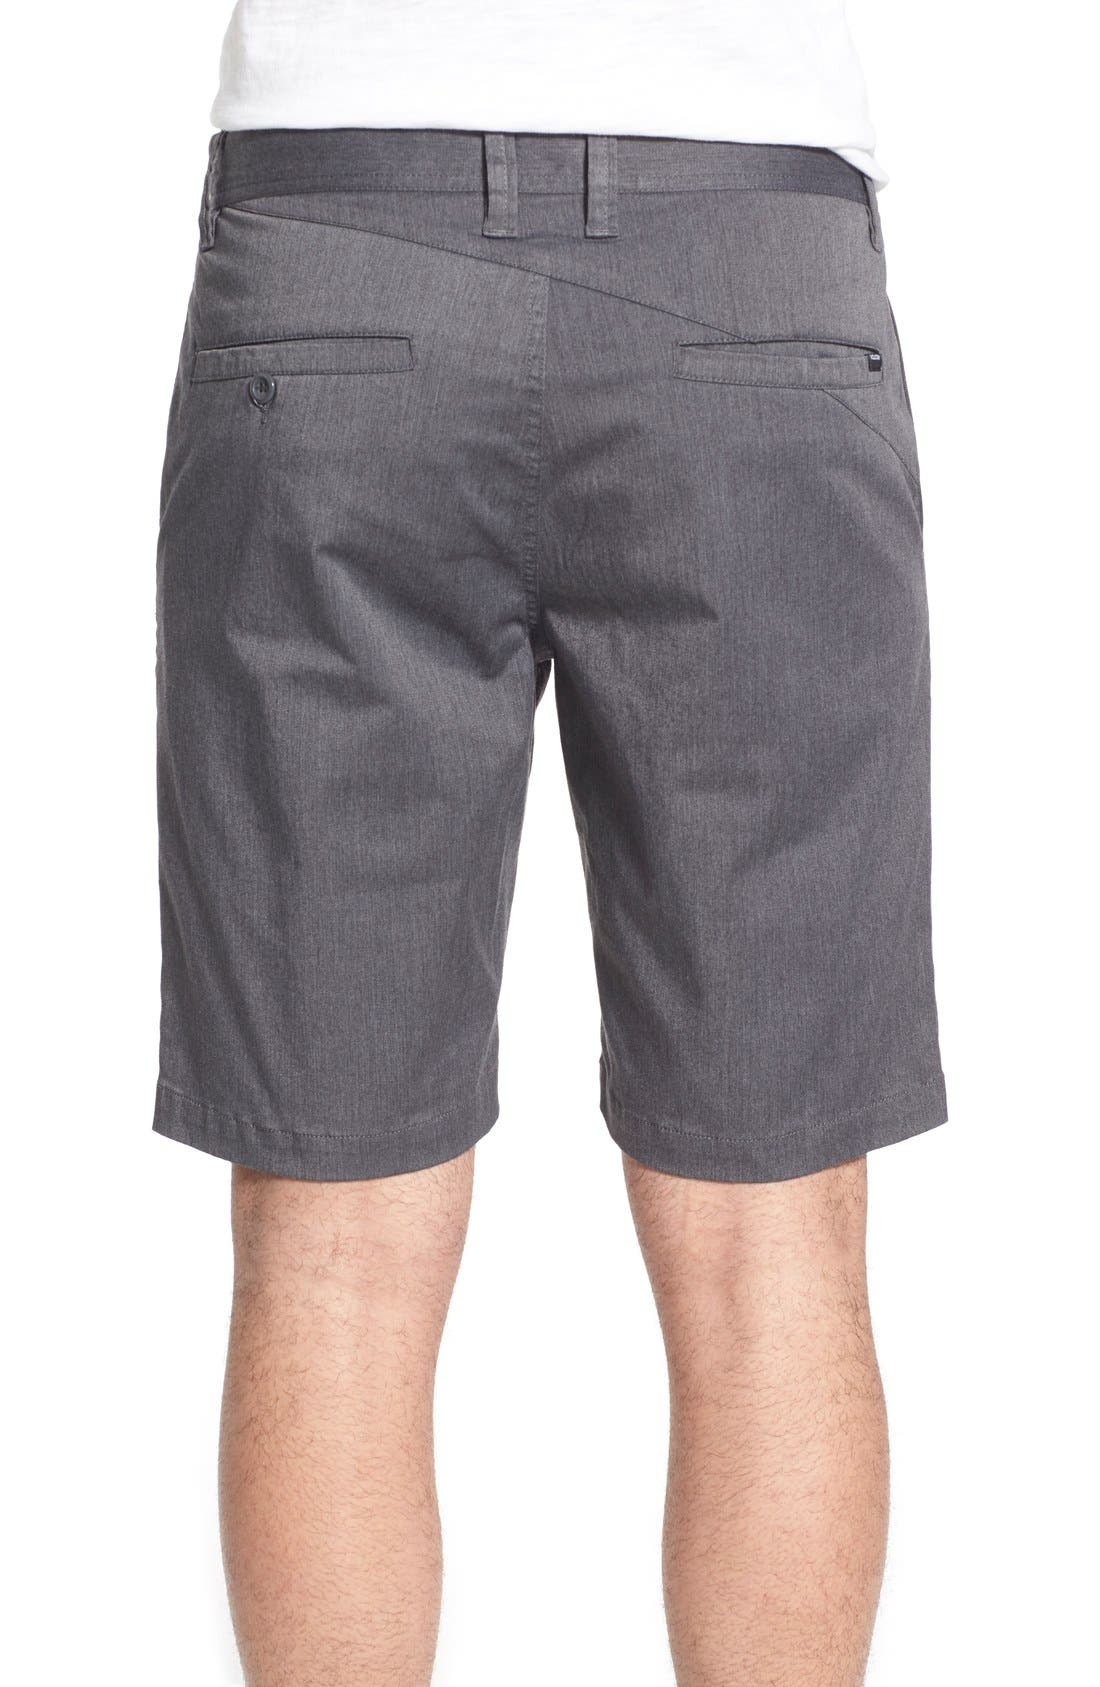 'Lightweight' Shorts,                             Alternate thumbnail 2, color,                             Charcoal Heather